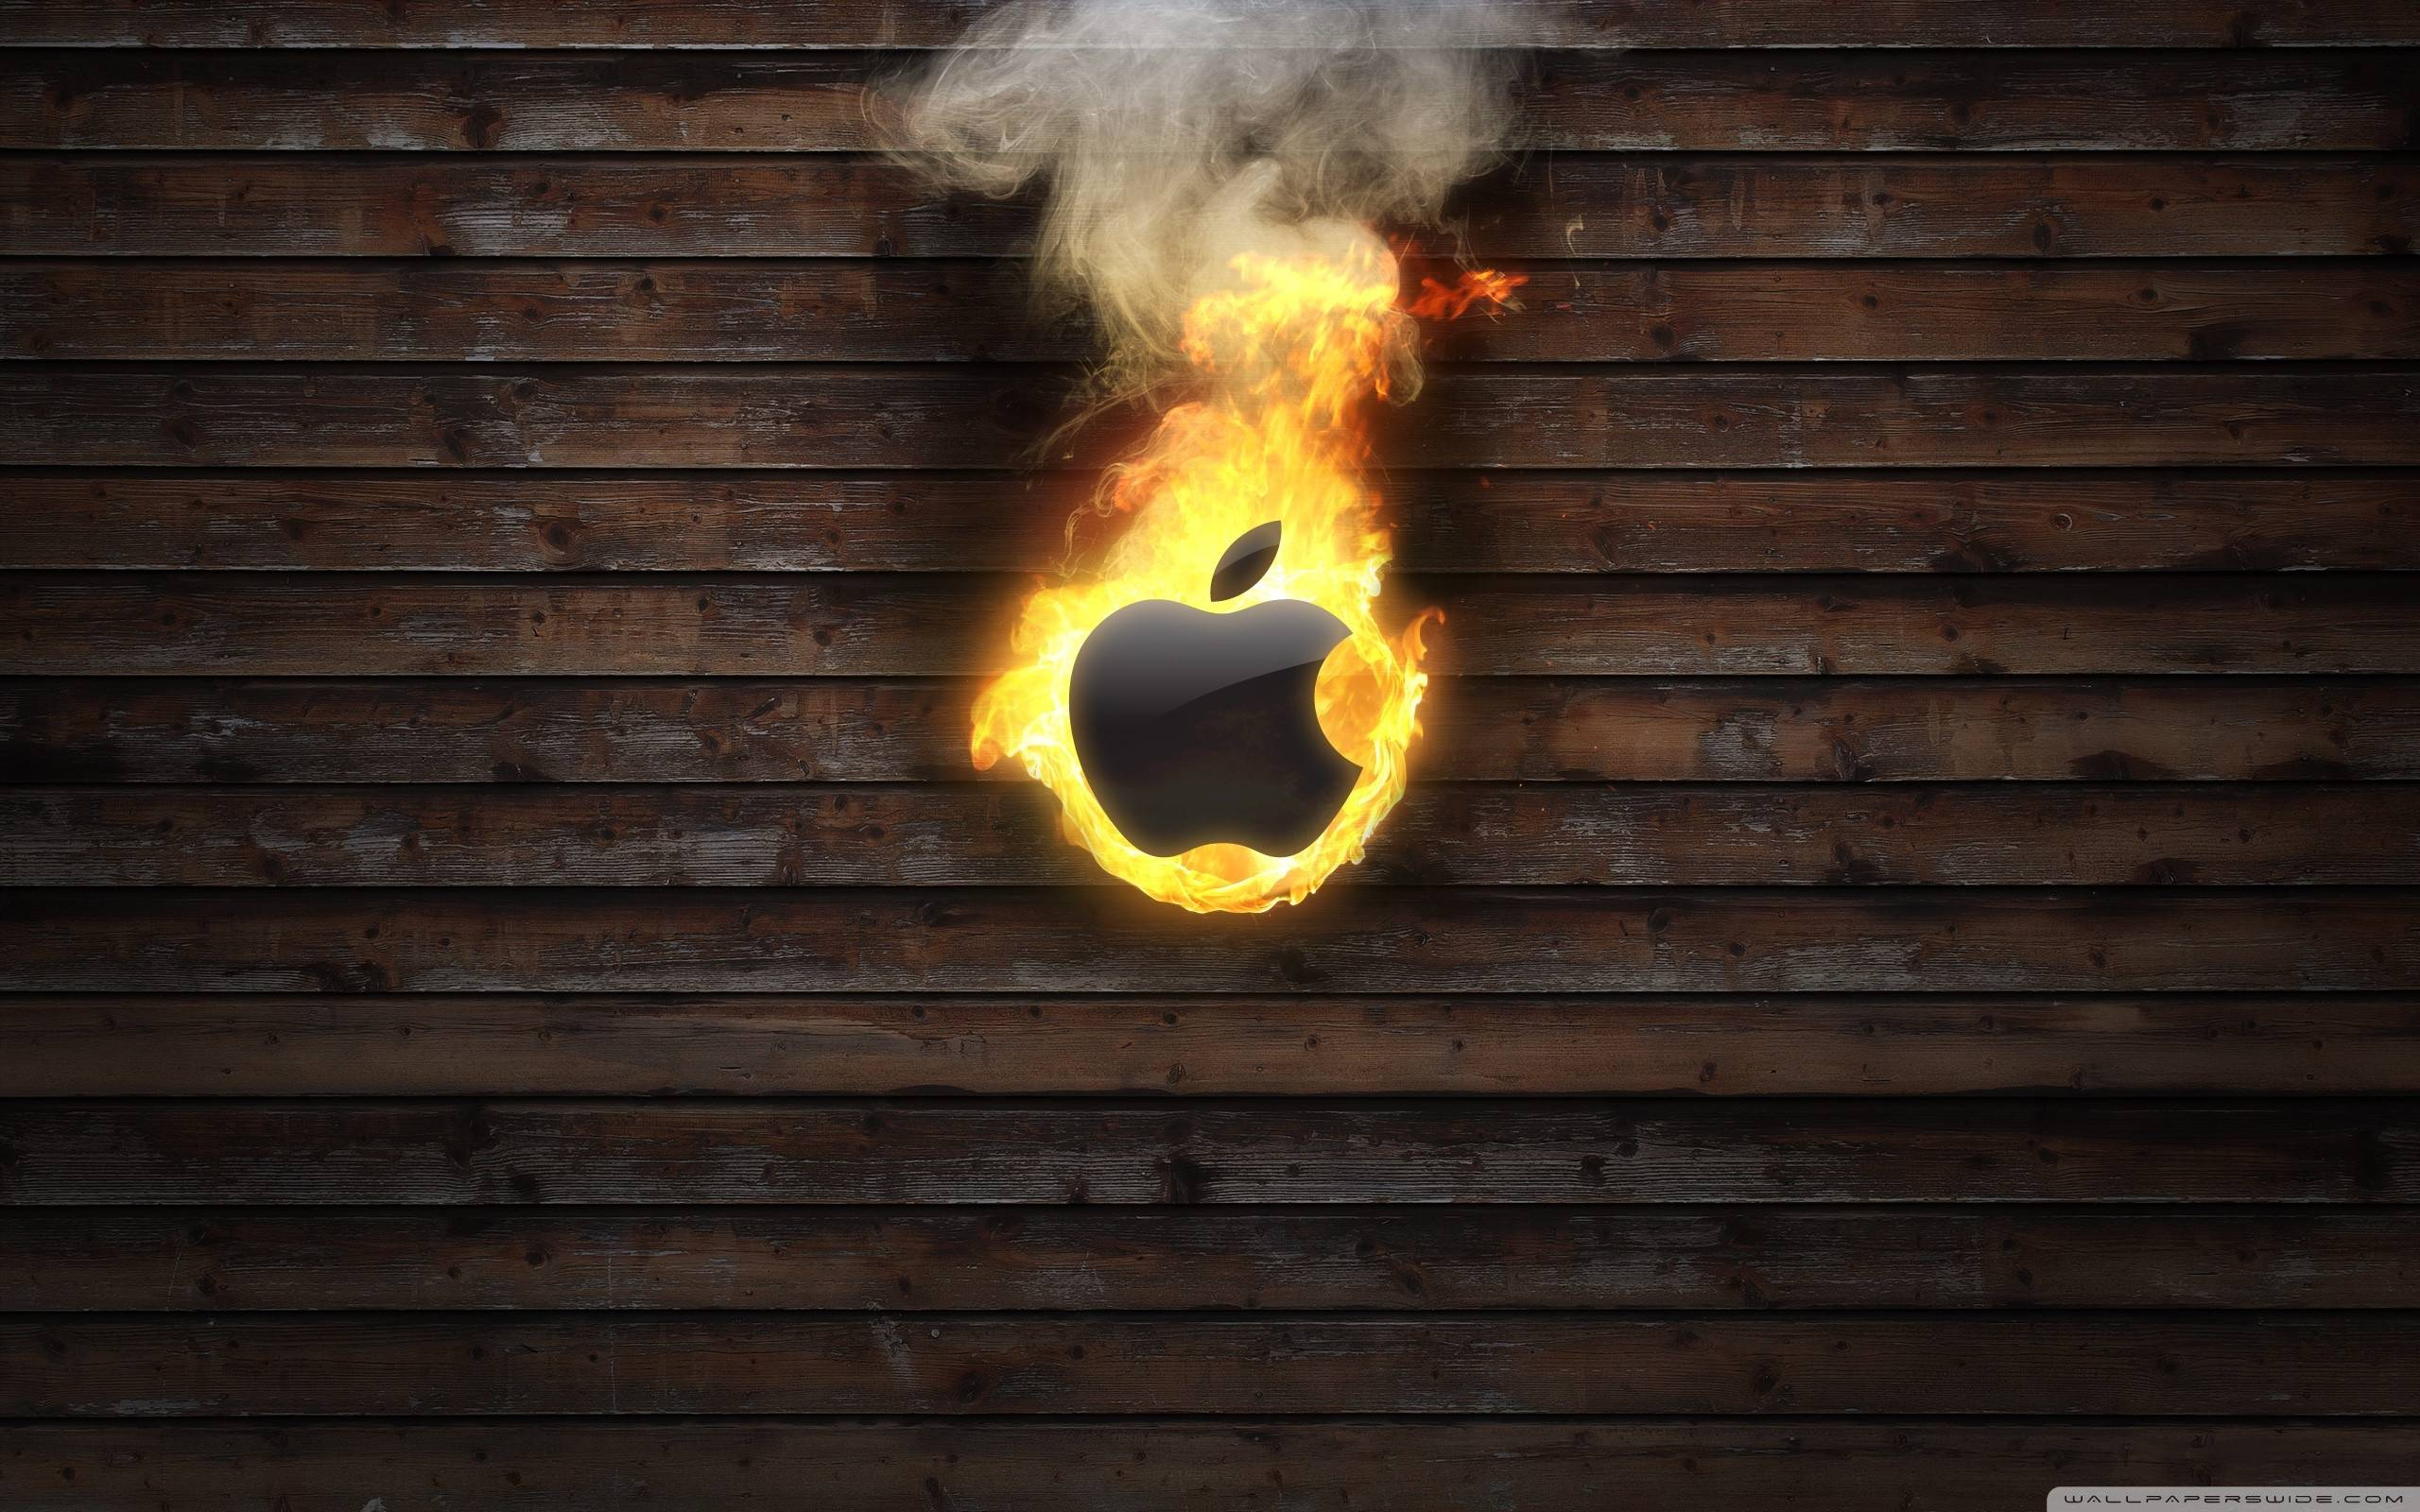 Weekly Wallpaper: Show Your Apple Pride